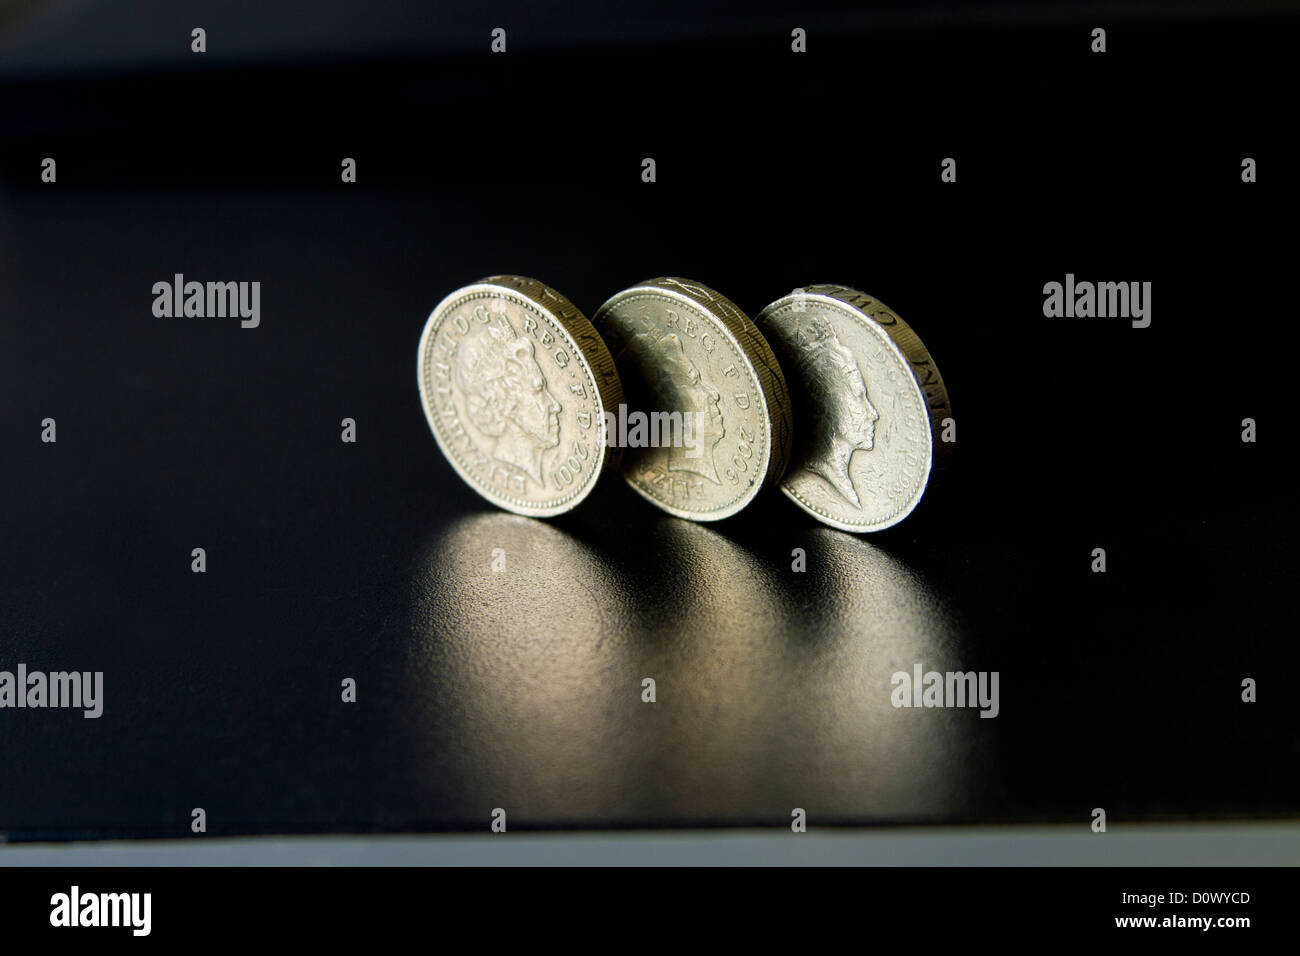 Pound Coins of the United Kingdom, Wealth, Money, Banks, Banking, - Stock Image